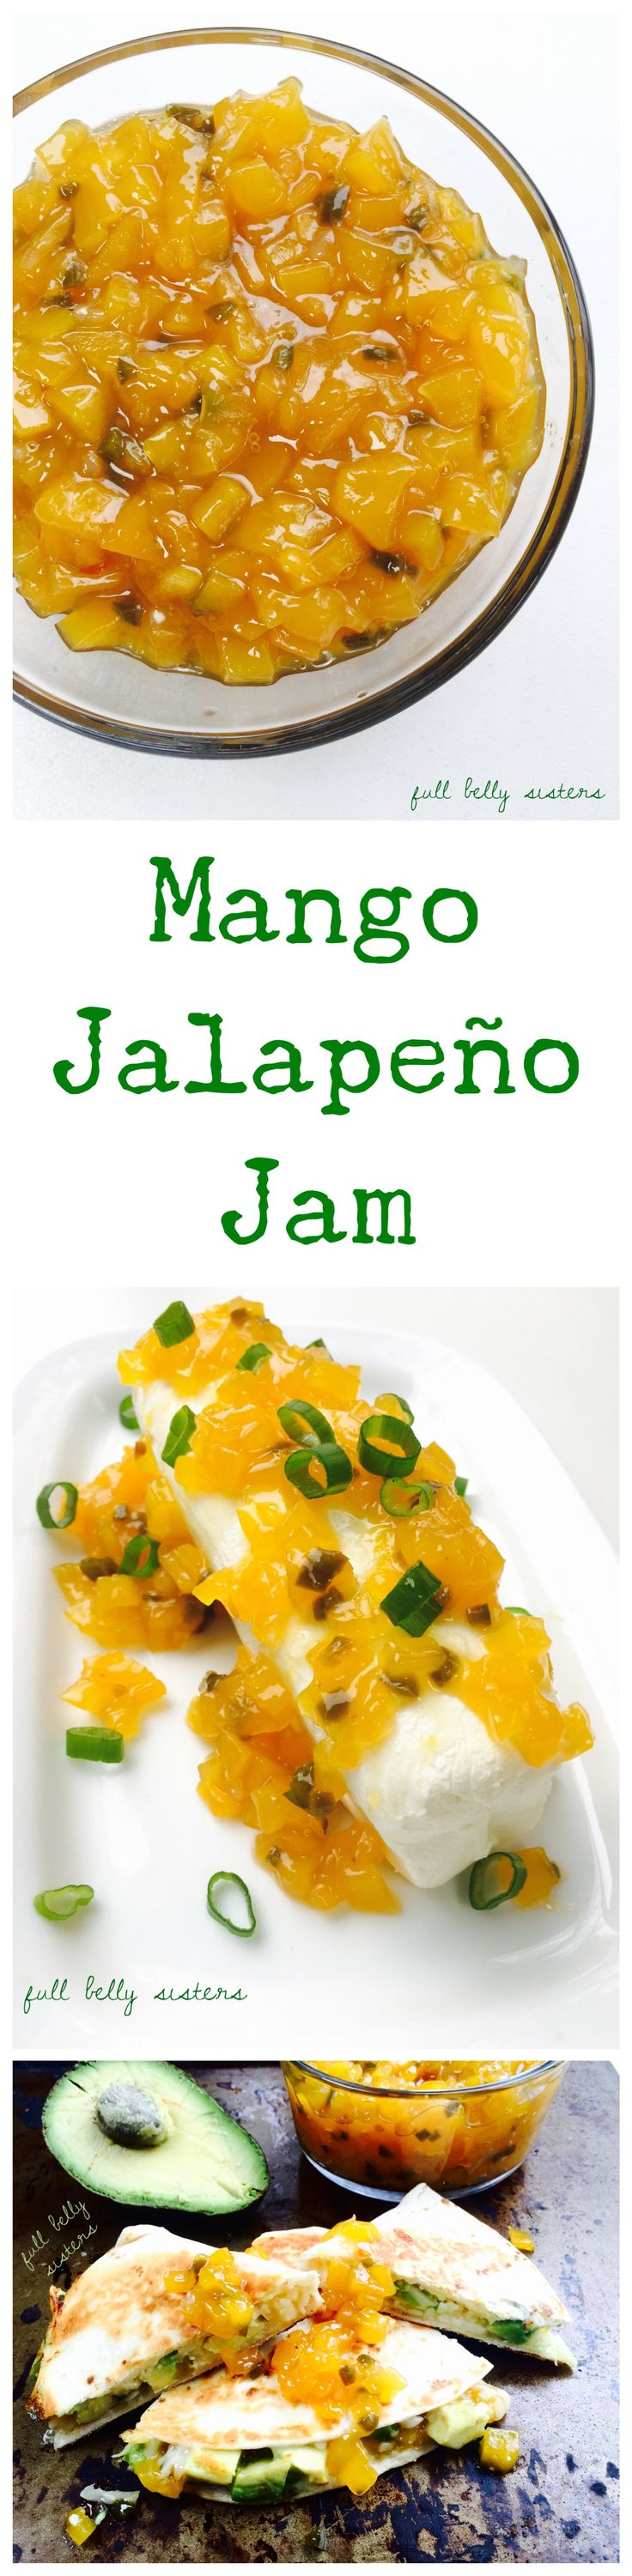 This sweet and spicy Mango Jalapeno Jam is simple to make and super versatile: pour it over cream cheese as a dip for crackers; make a cheddar, avocado, mango jalapeno quesadilla; or spoon it over roasted pork or chicken. It's delicious any way you use it! *adapted from @theflavorbender